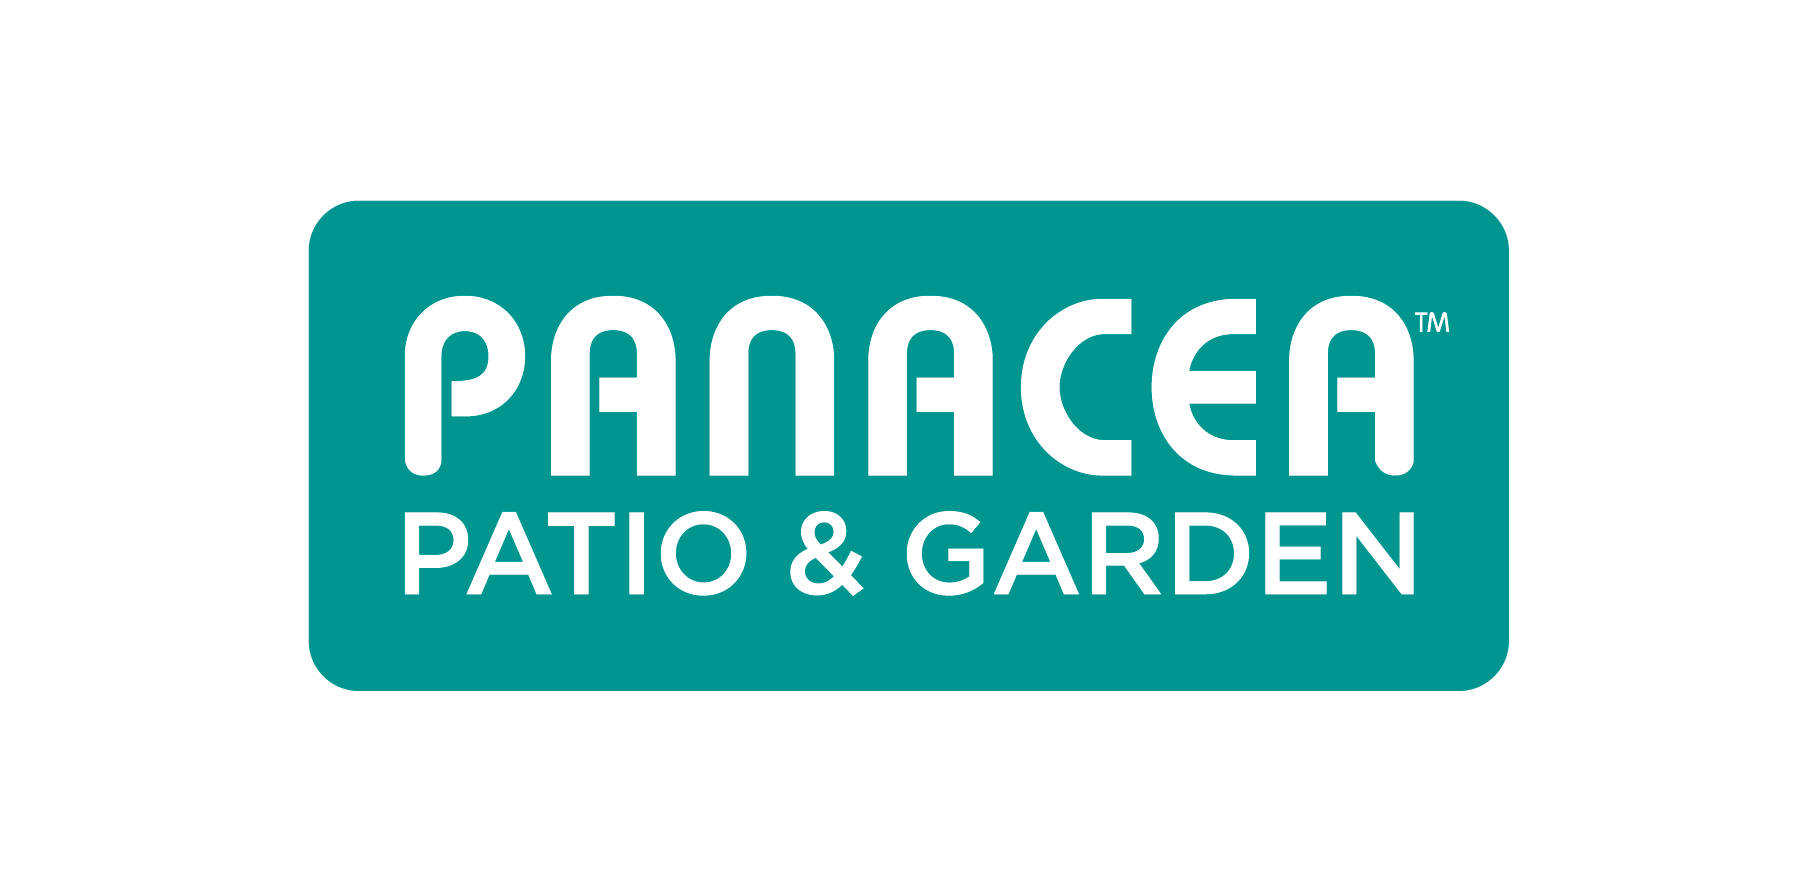 Panacea Products Ltd